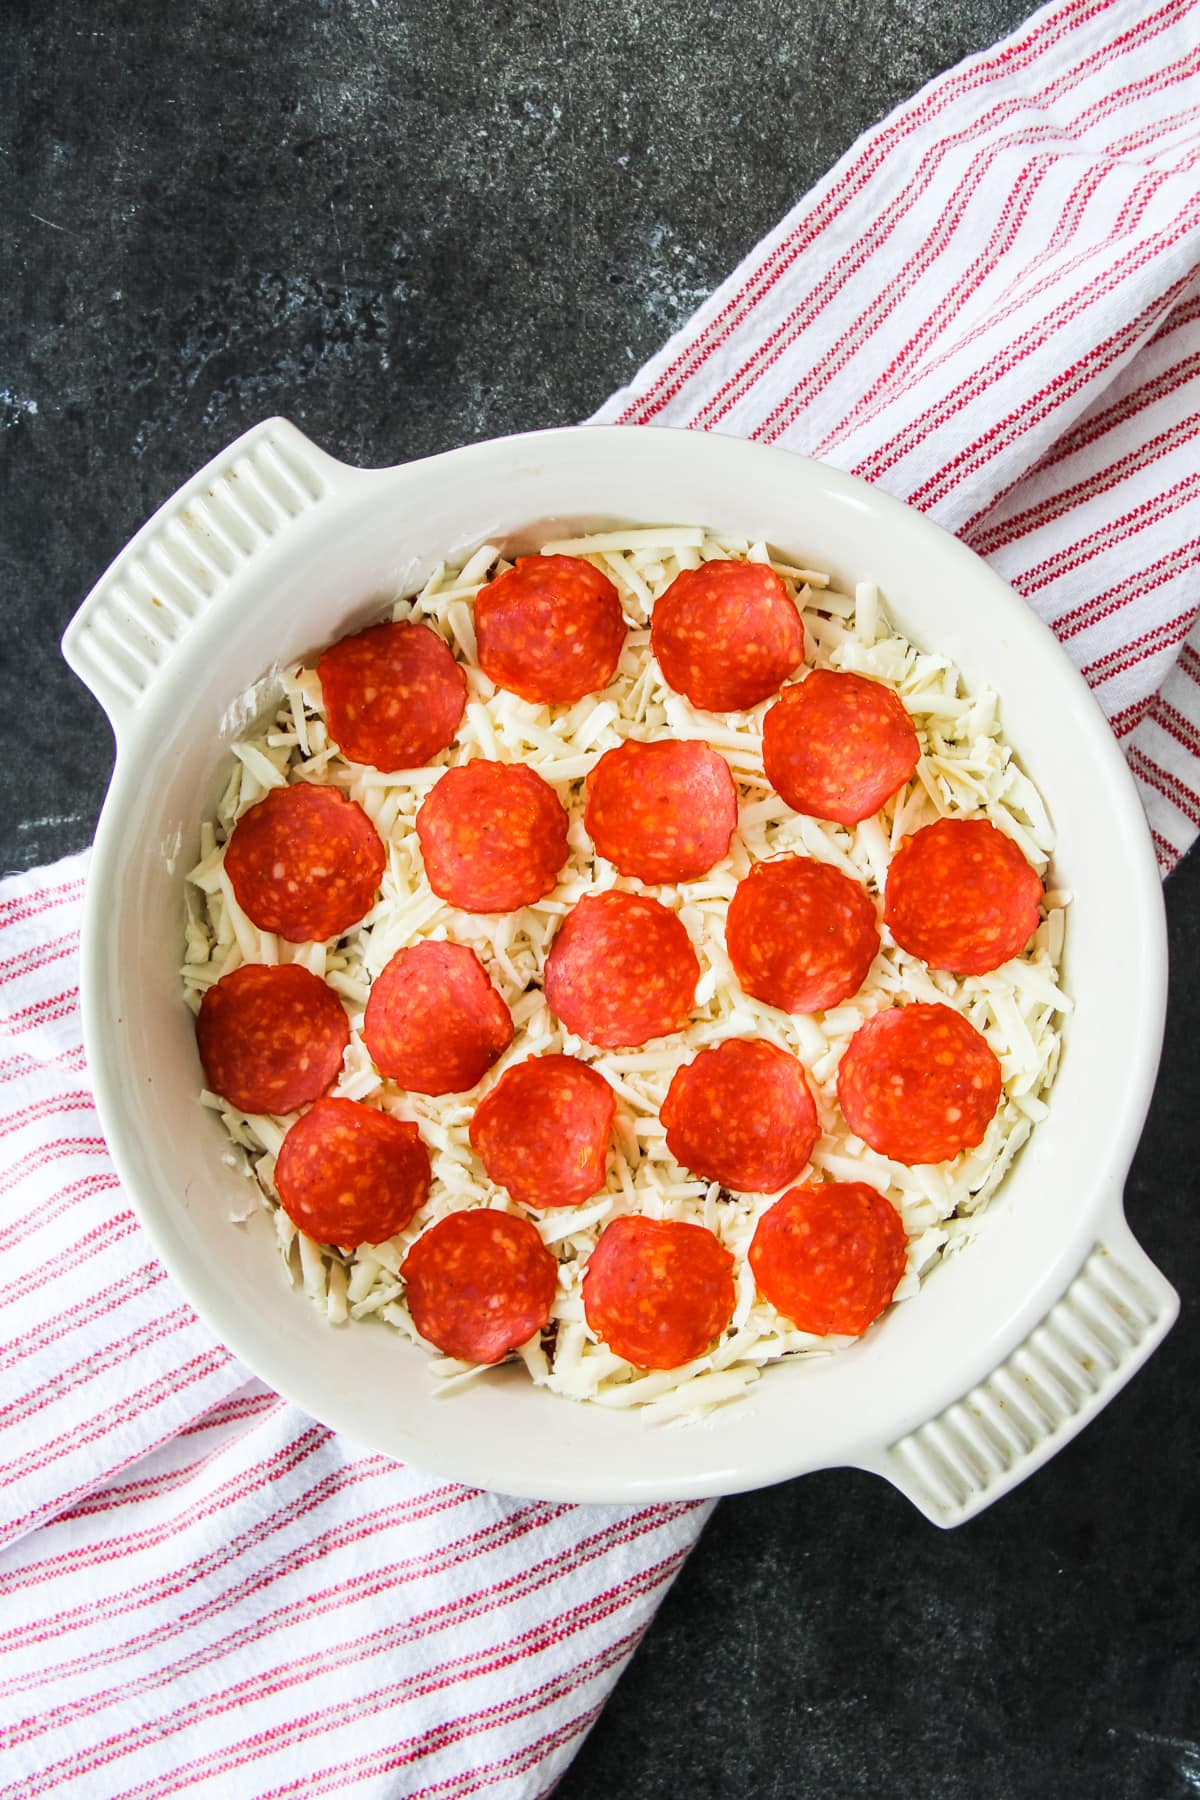 a top down view of an unbaked pizza dip with pepperoni. in the background is a red and white striped towel